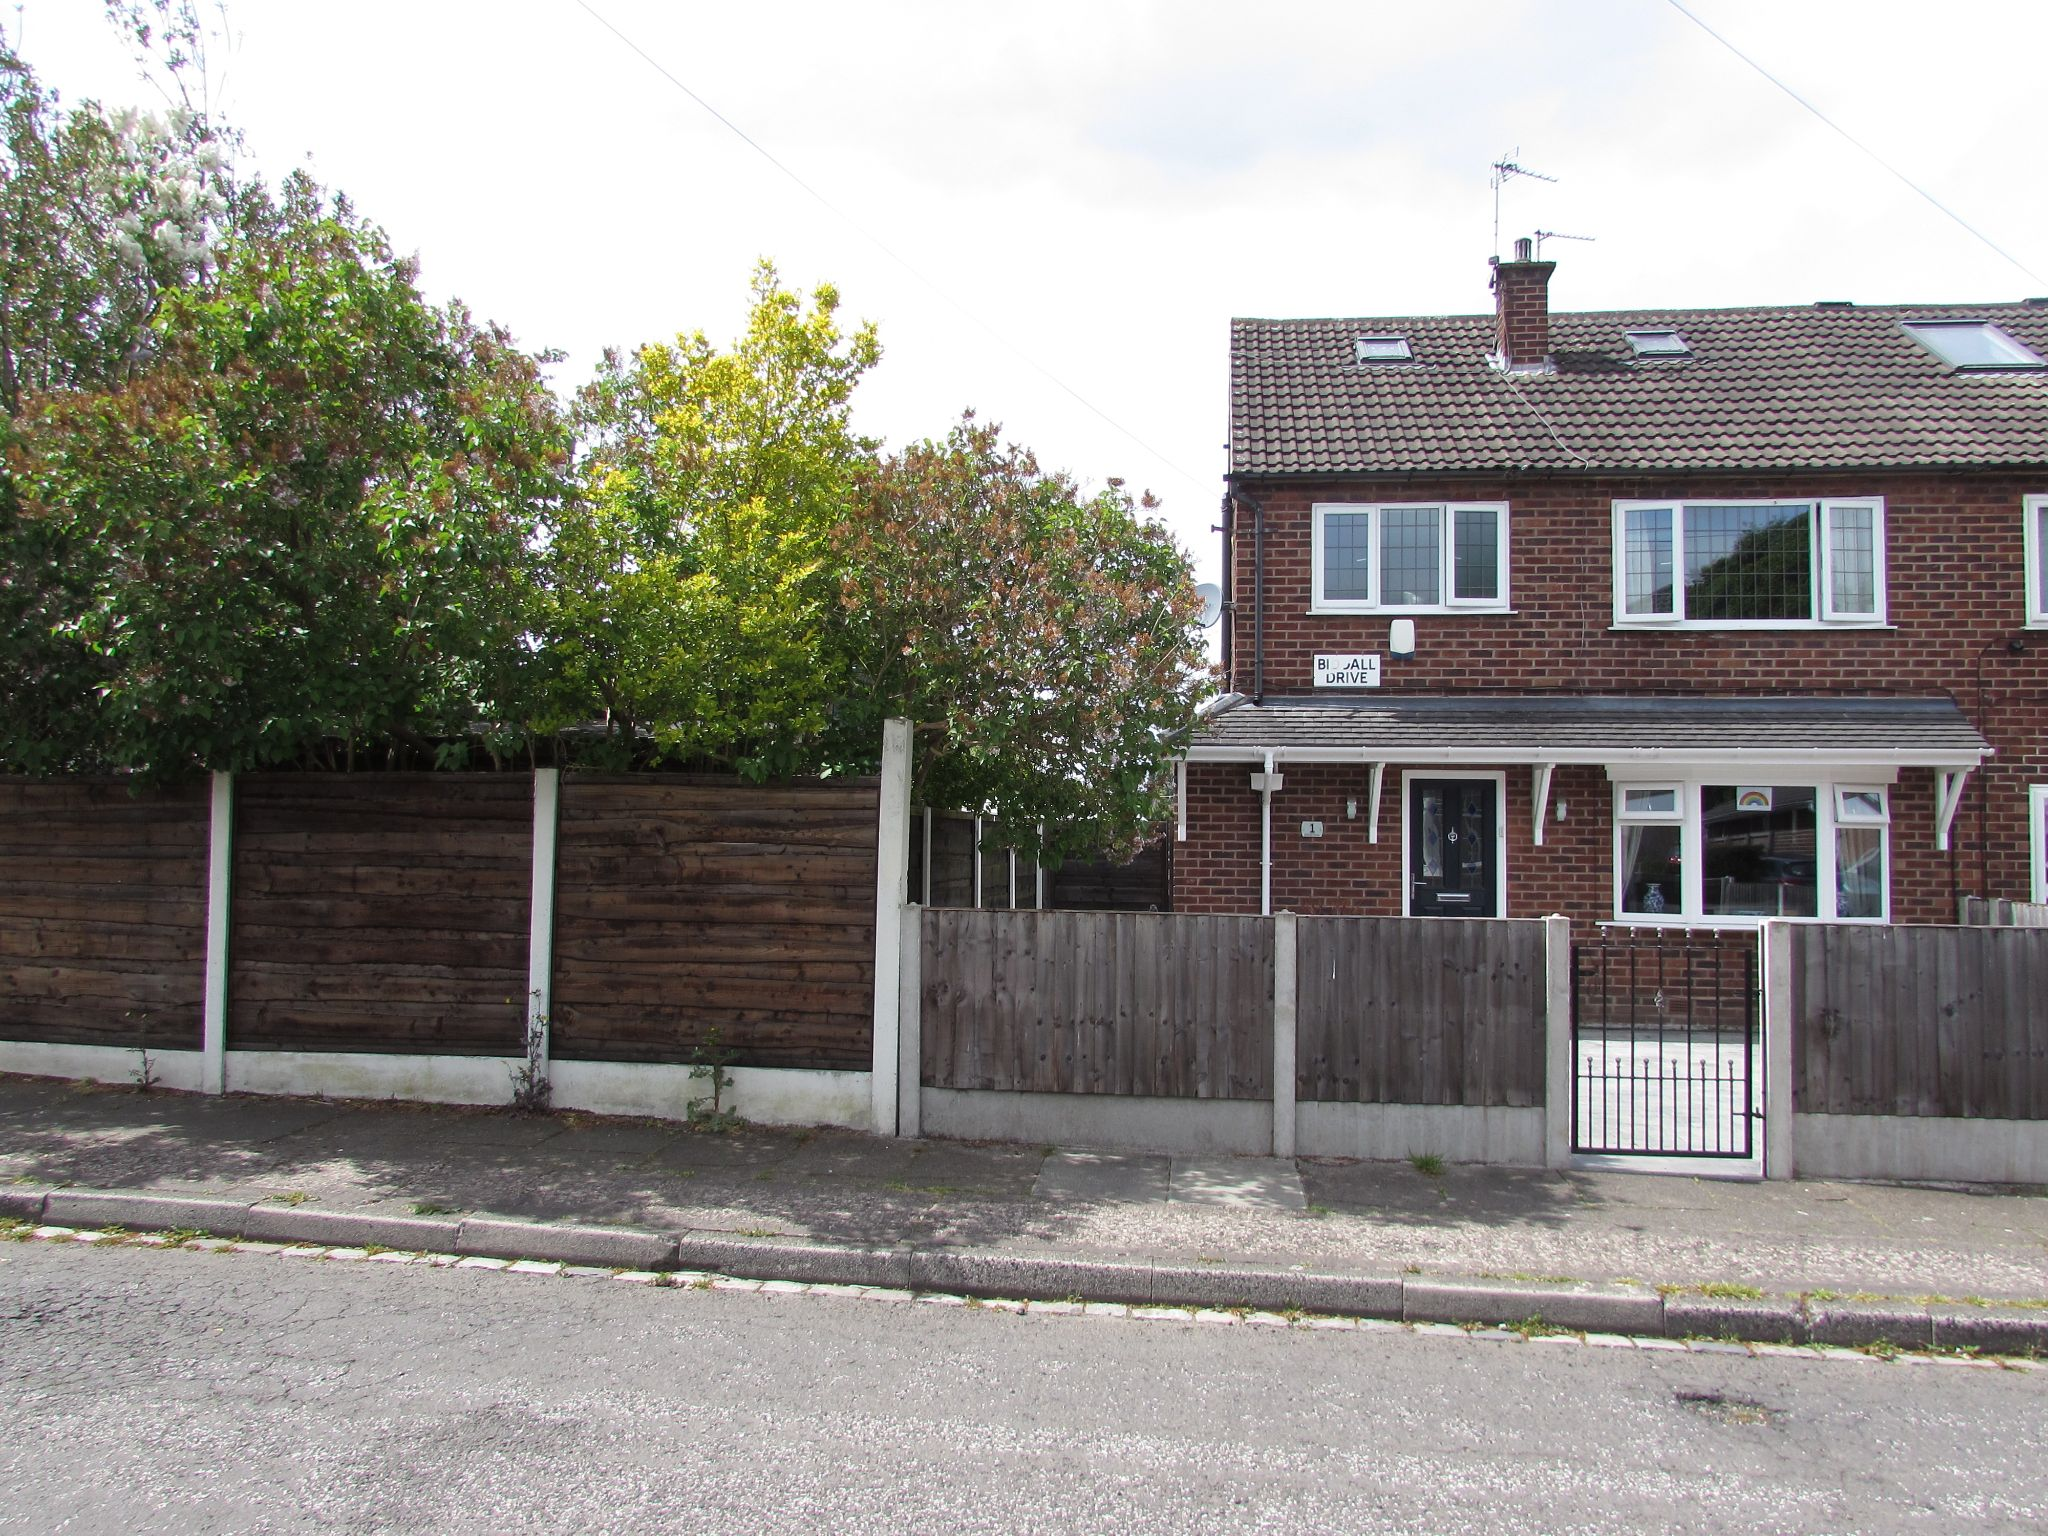 3 Bedroom Semi-detached House For Sale - Photograph 28